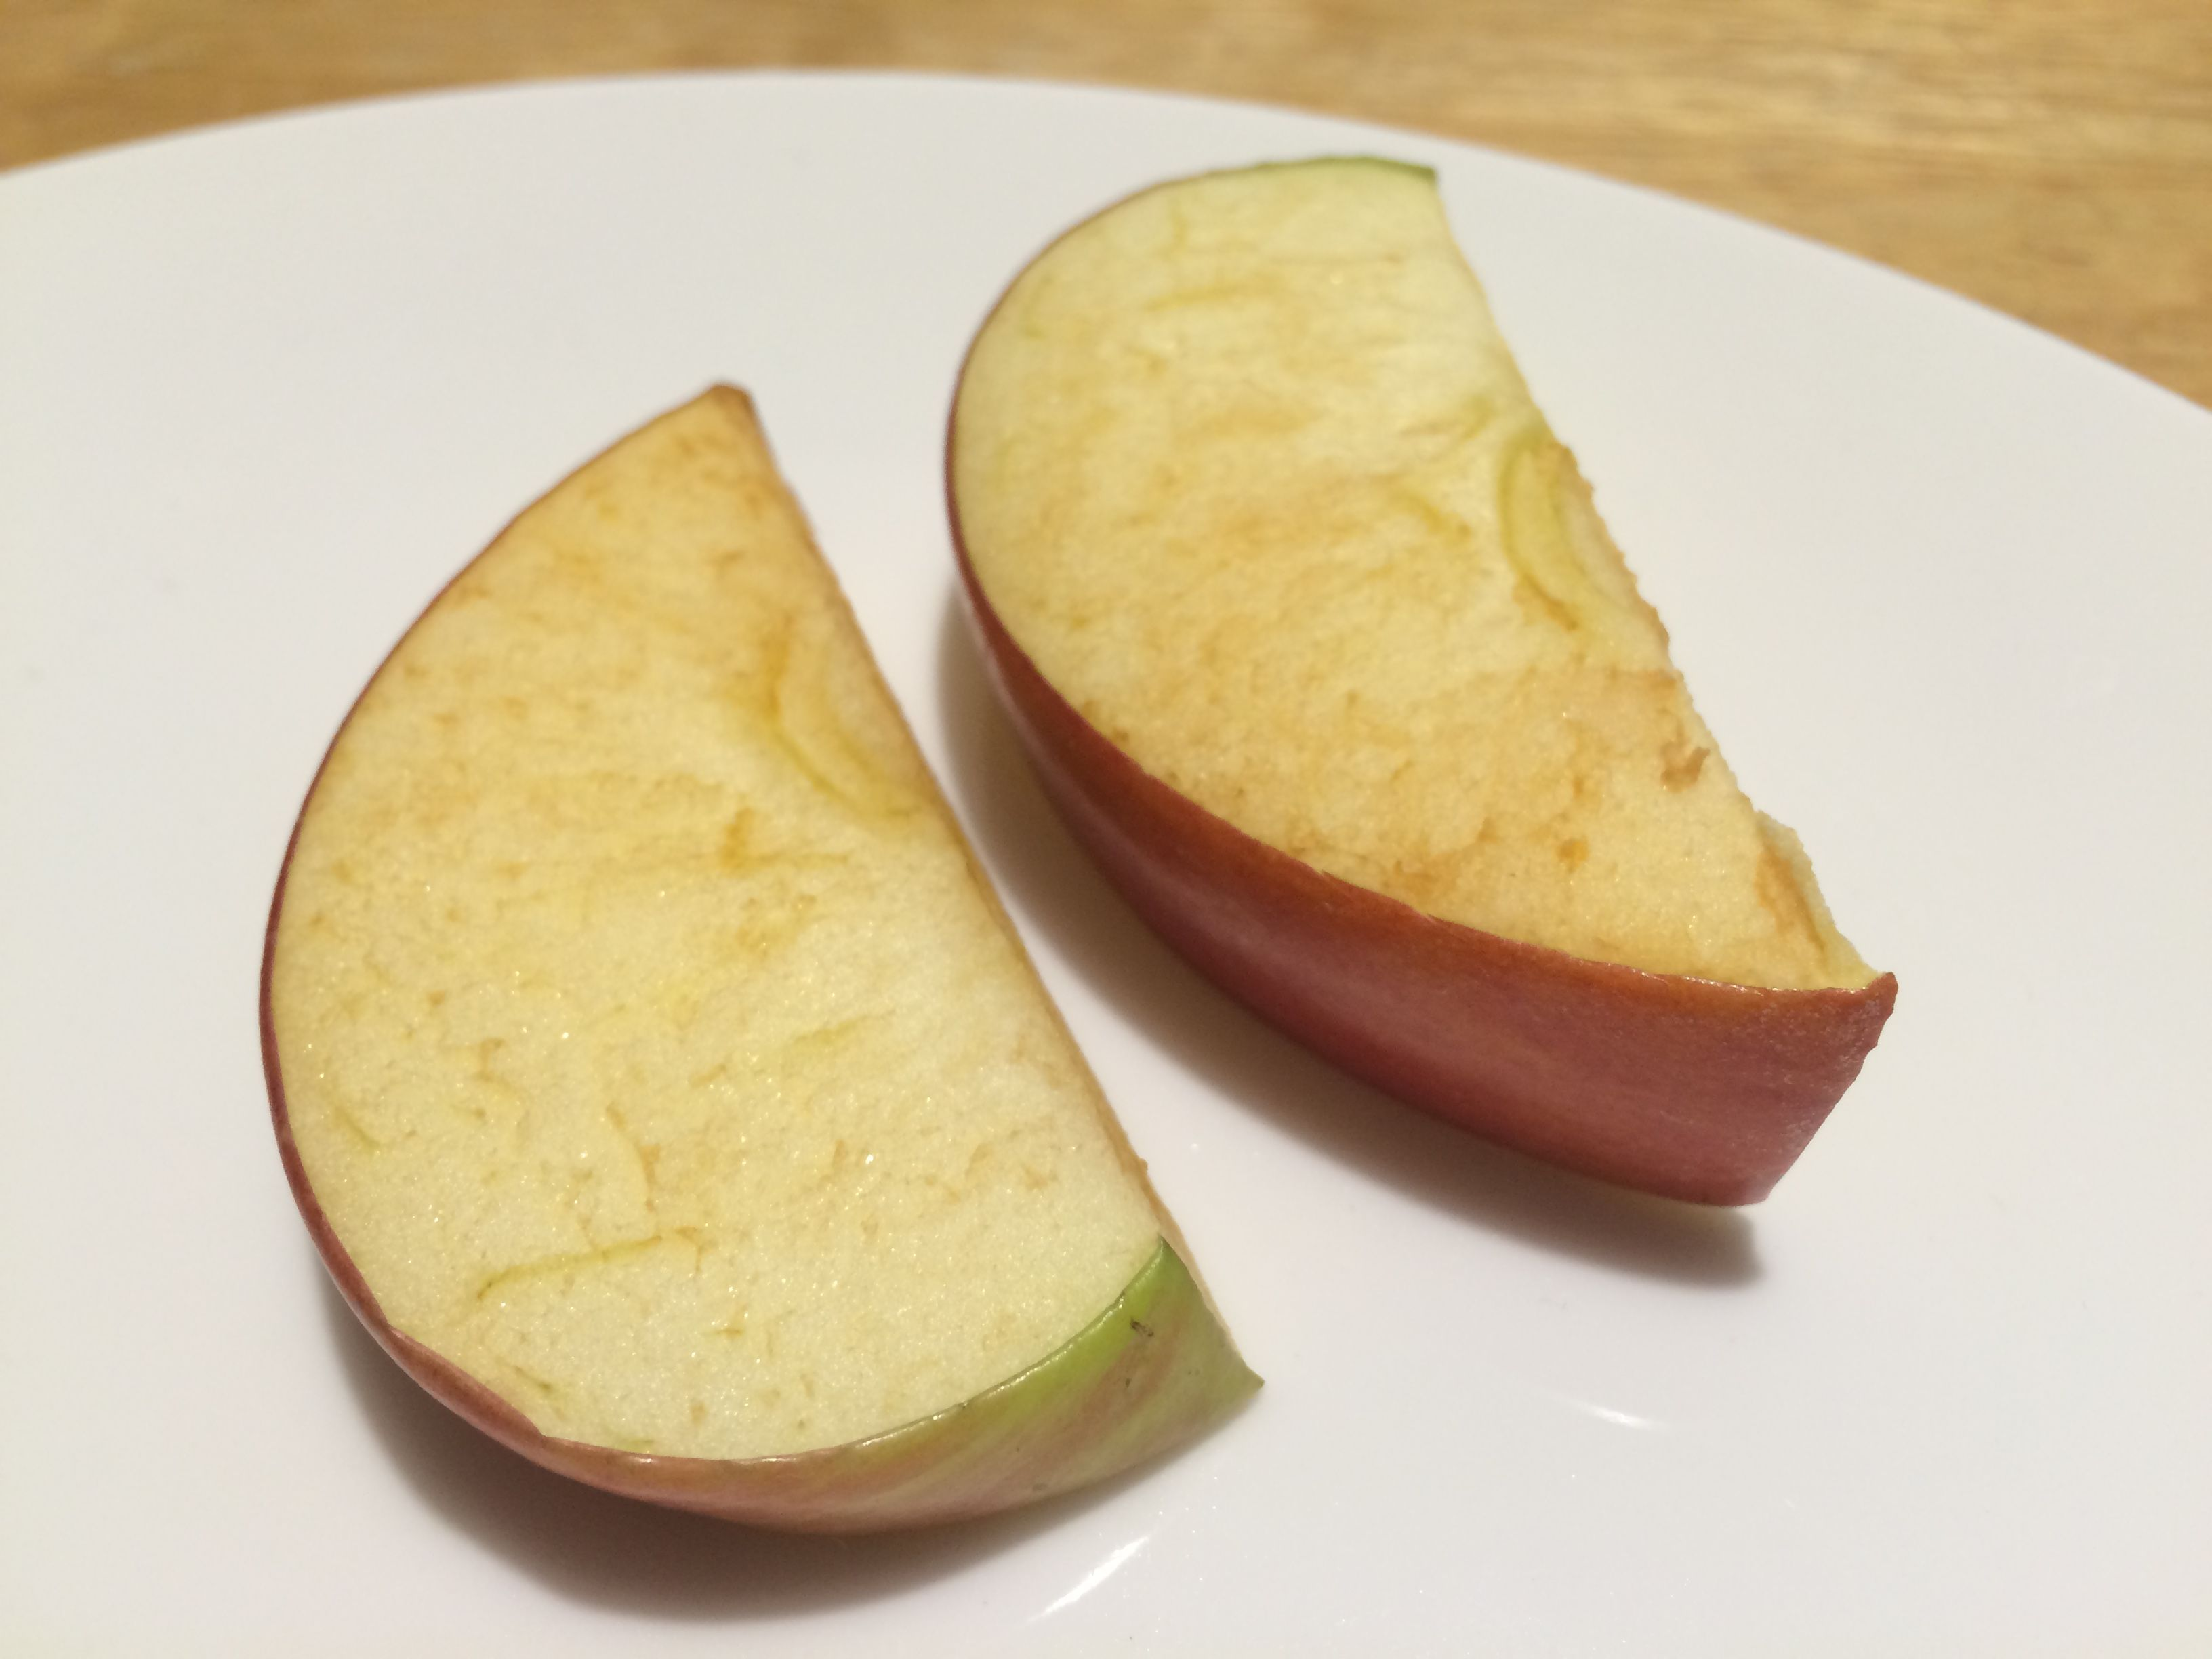 Apple slices turned brown Are they bad apples, or just